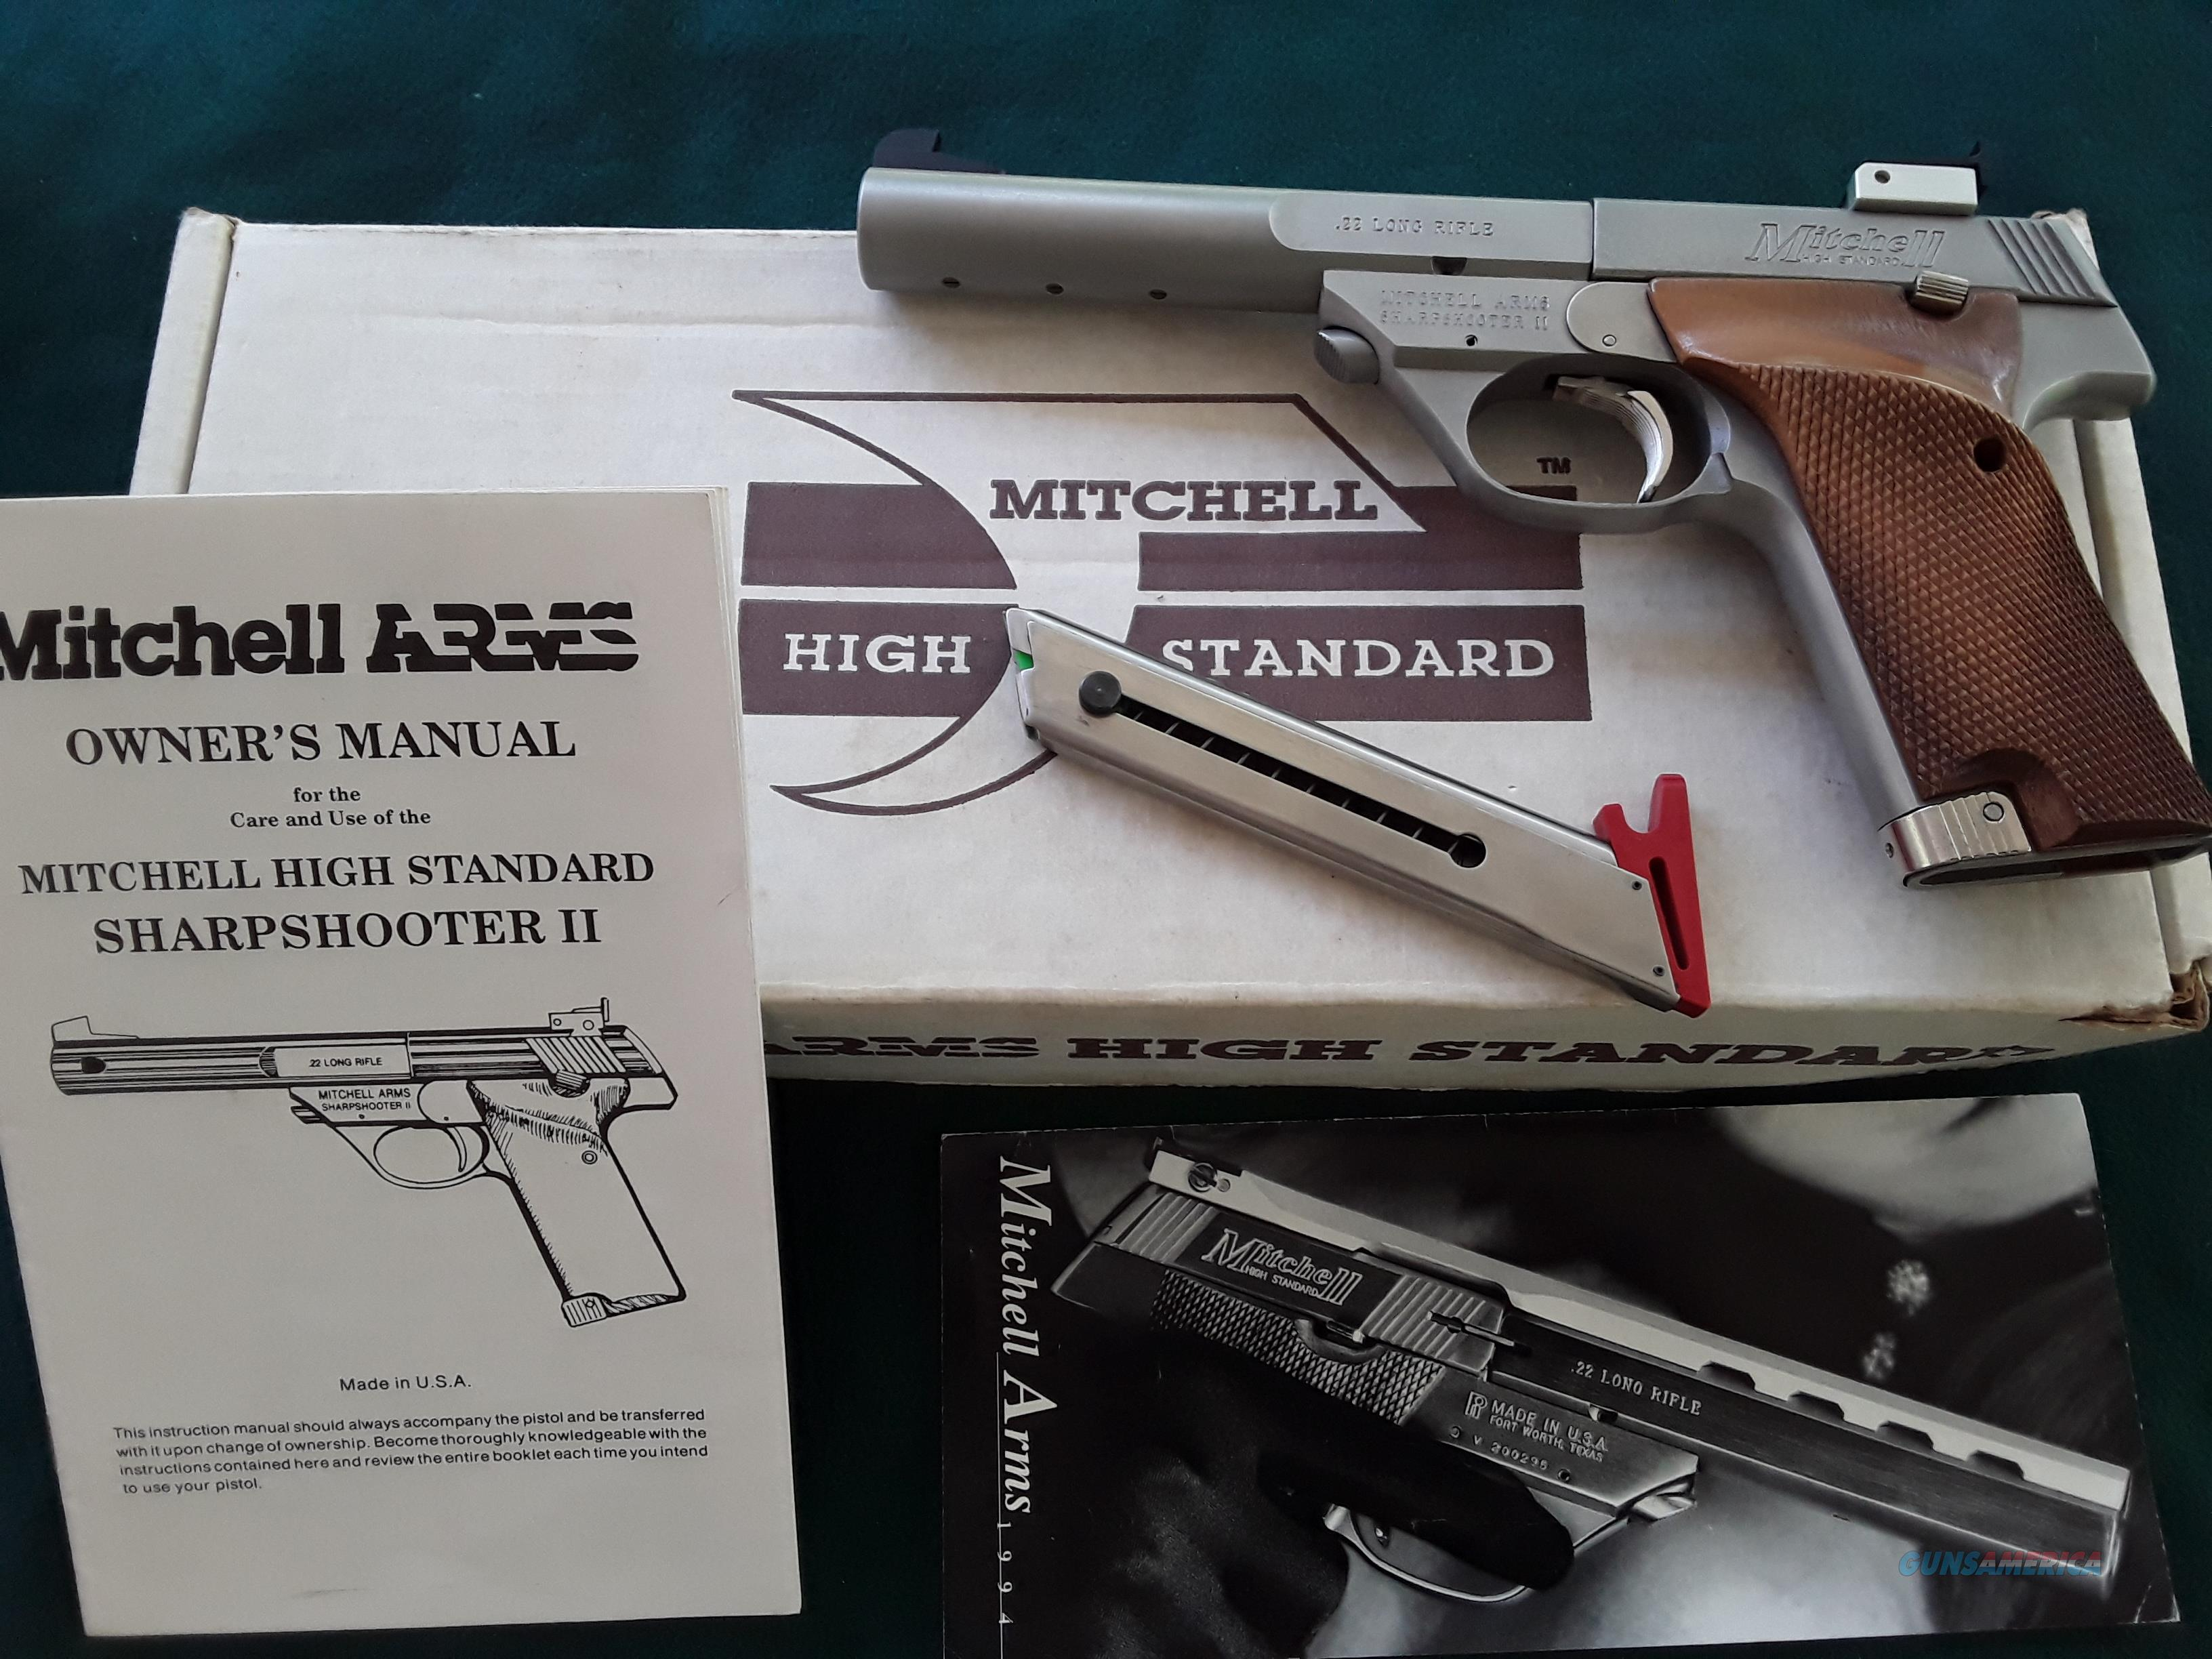 Mitchell High Standard Sharpshooter II  with Box And Papers  Guns > Pistols > Mitchell Arms Pistols